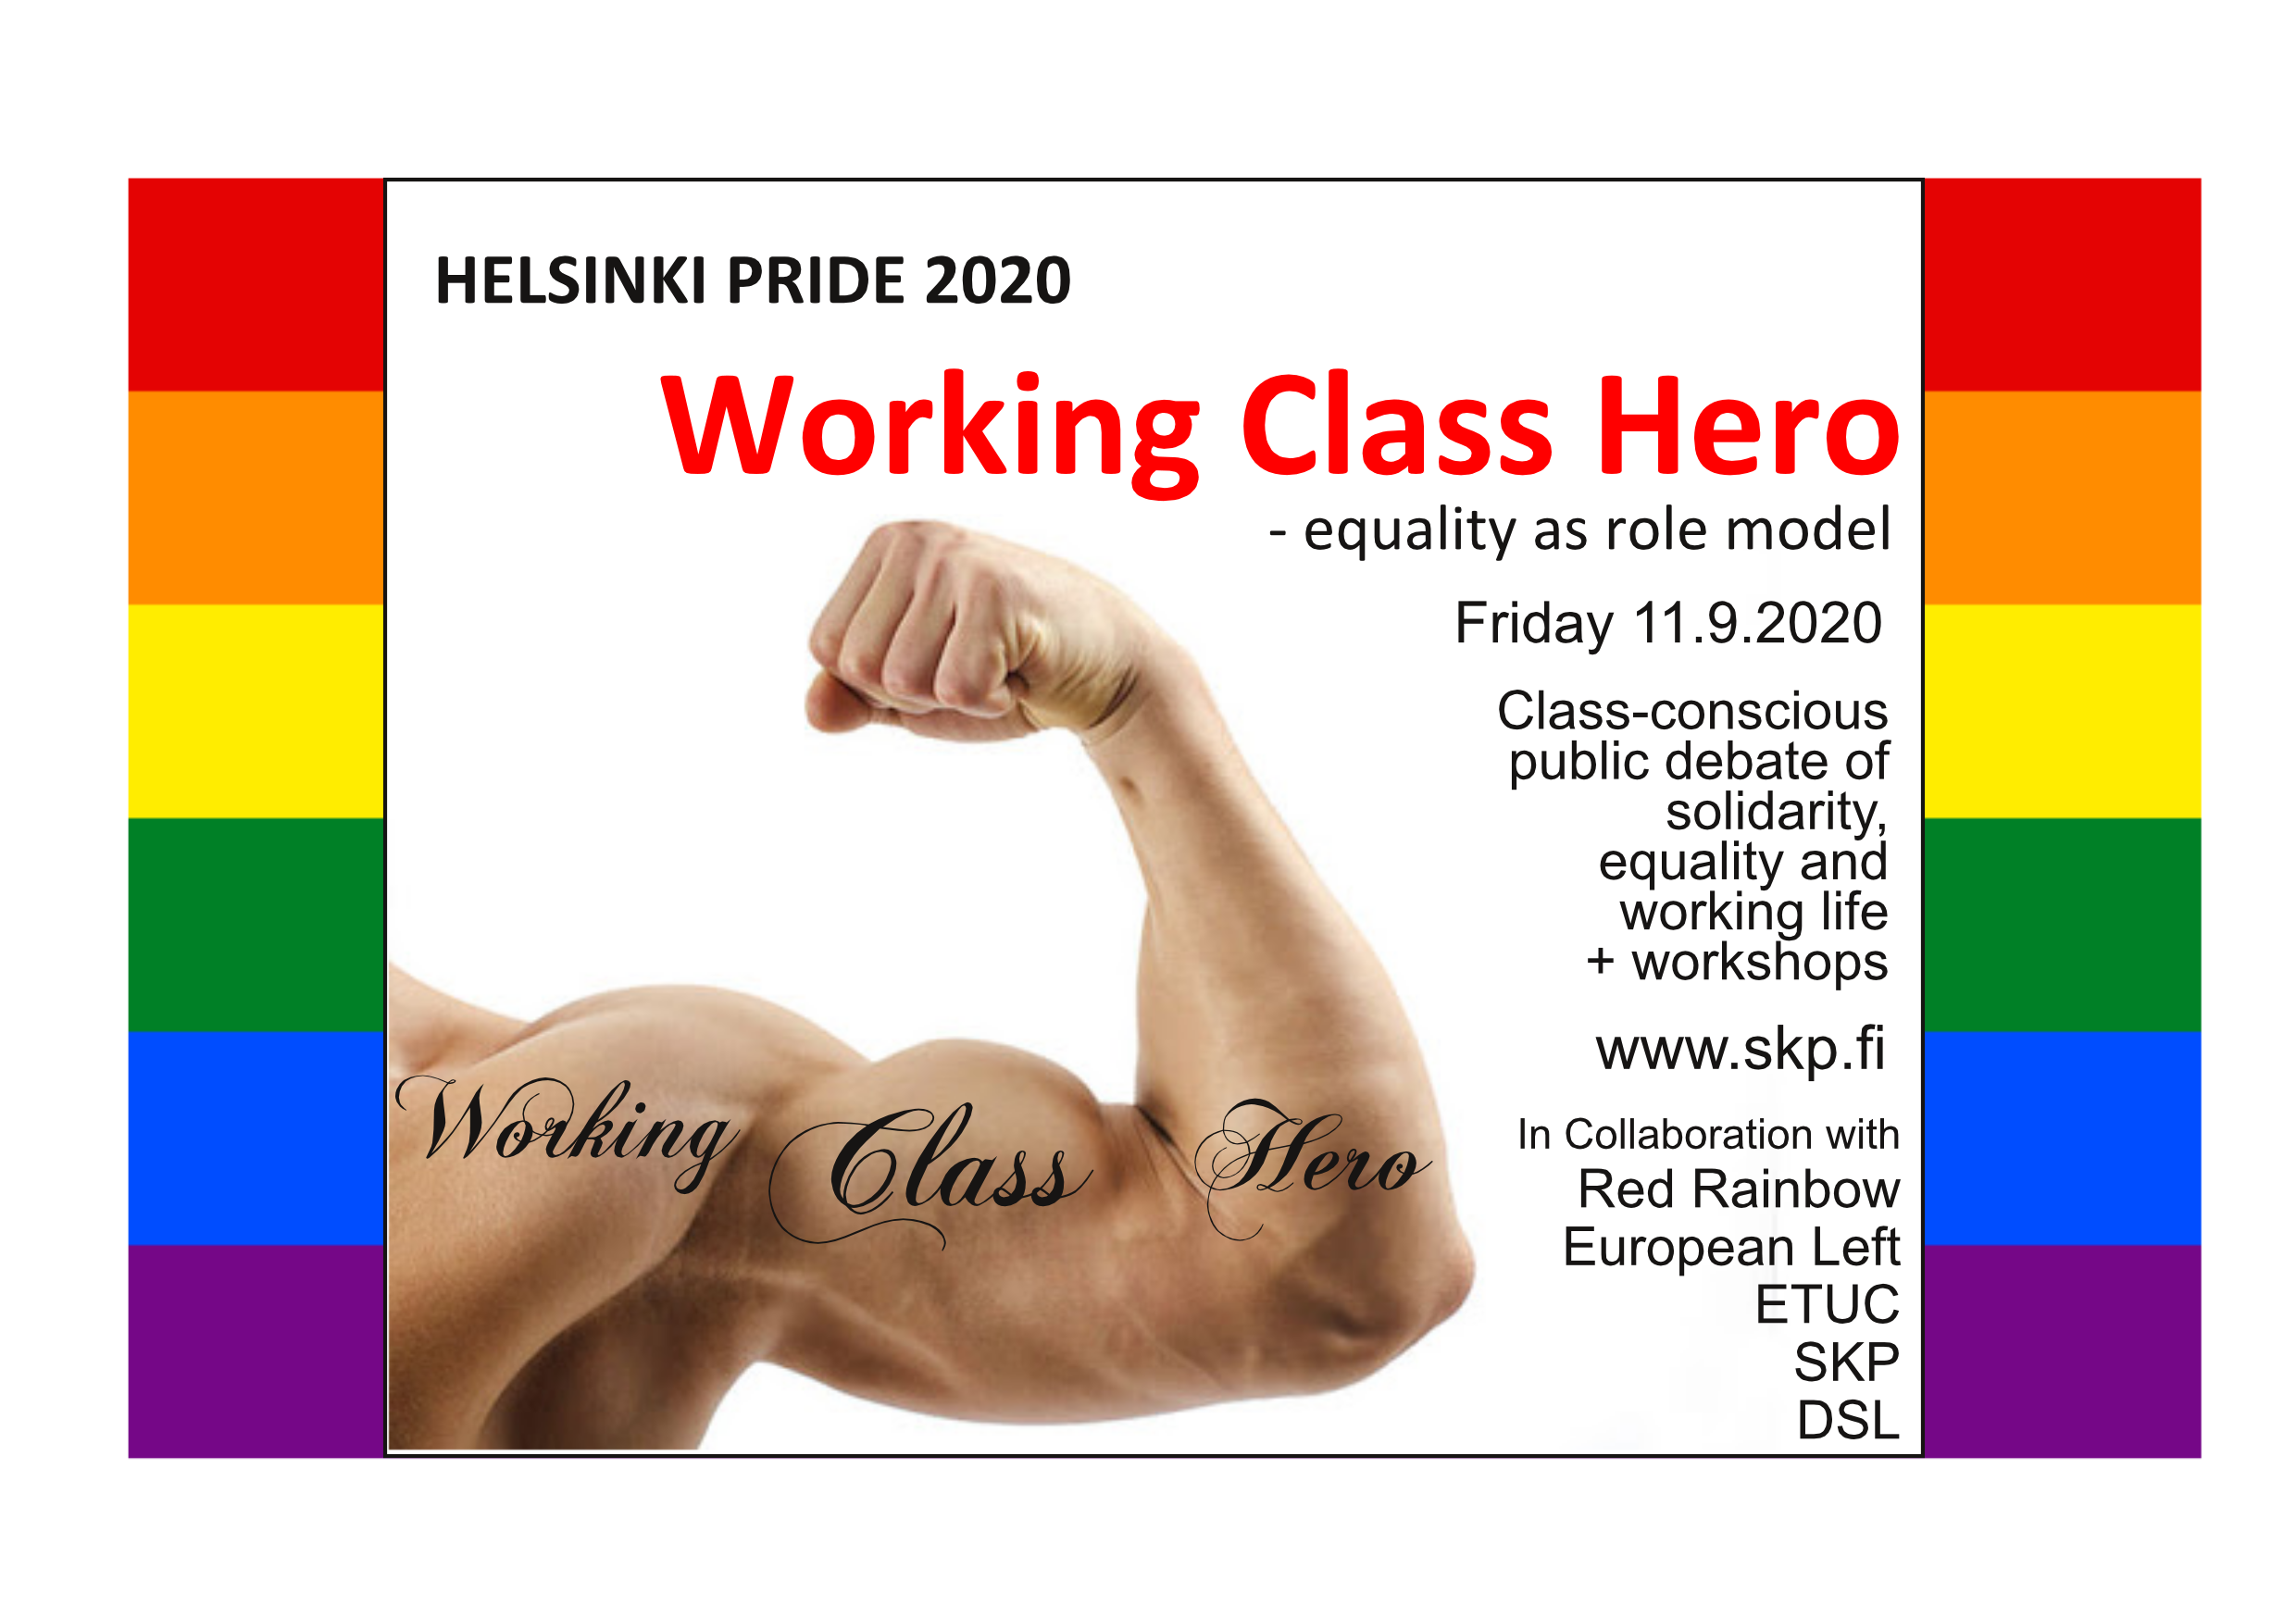 PRIDE 2020 Working Class Hero